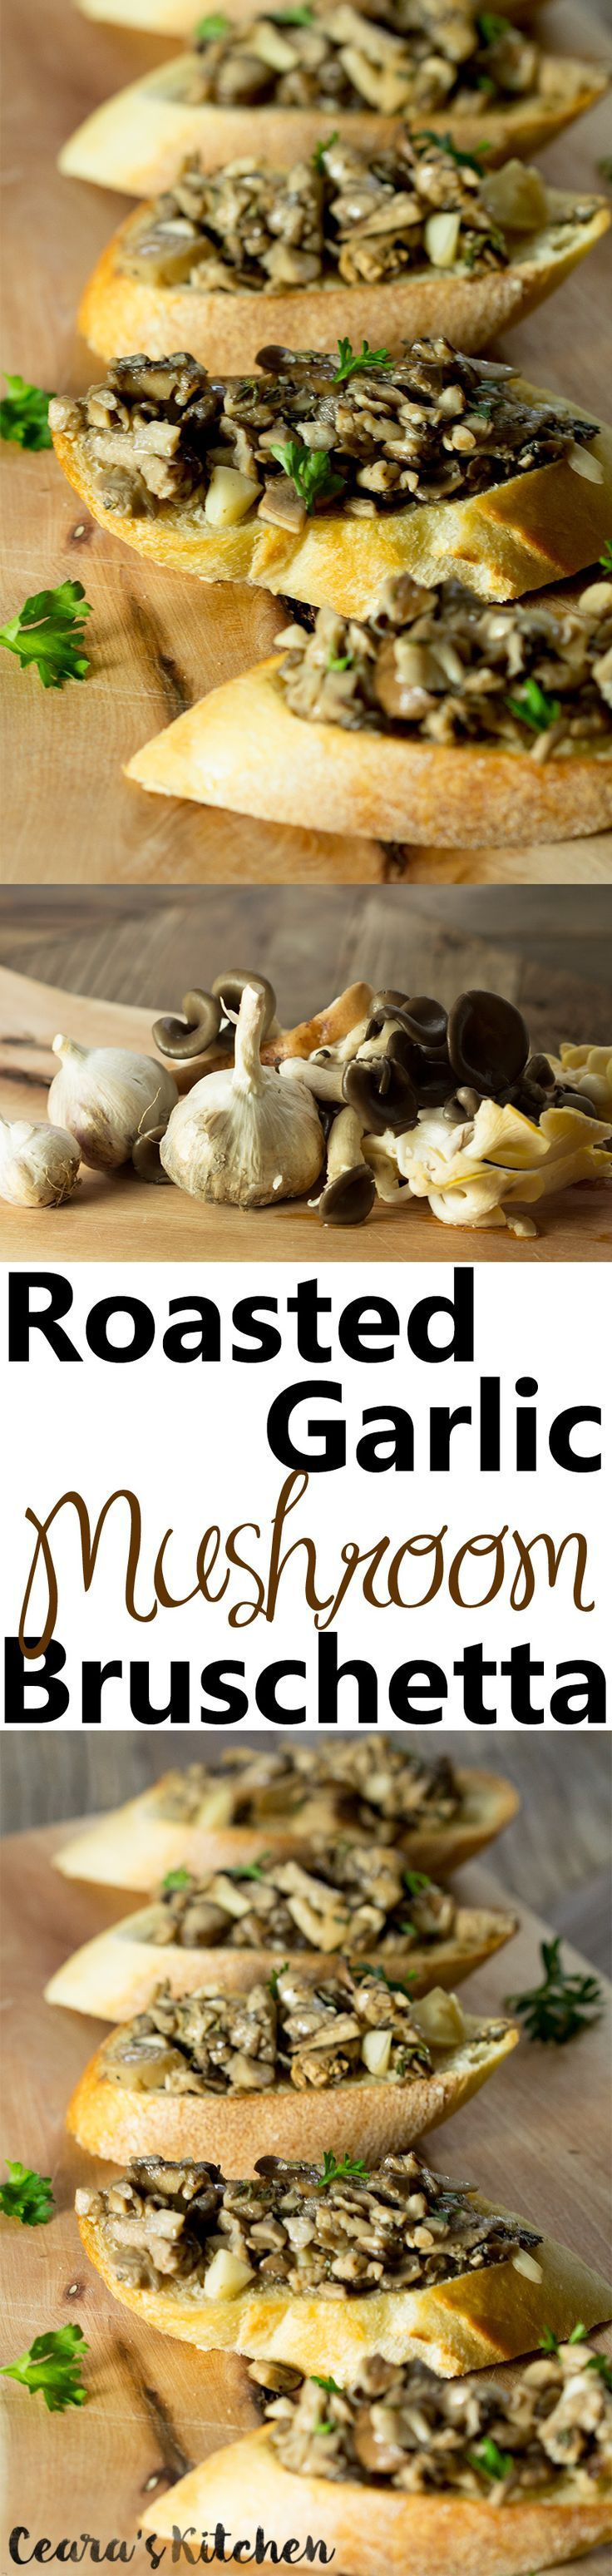 This Roasted Garlic Mushroom Bruschetta is so incredibly flavorful! It makes the perfect rich and flavorful #appetizer to serve at a party or family get-together! #vegan #vegetarian #mushrooms #food #veganfood